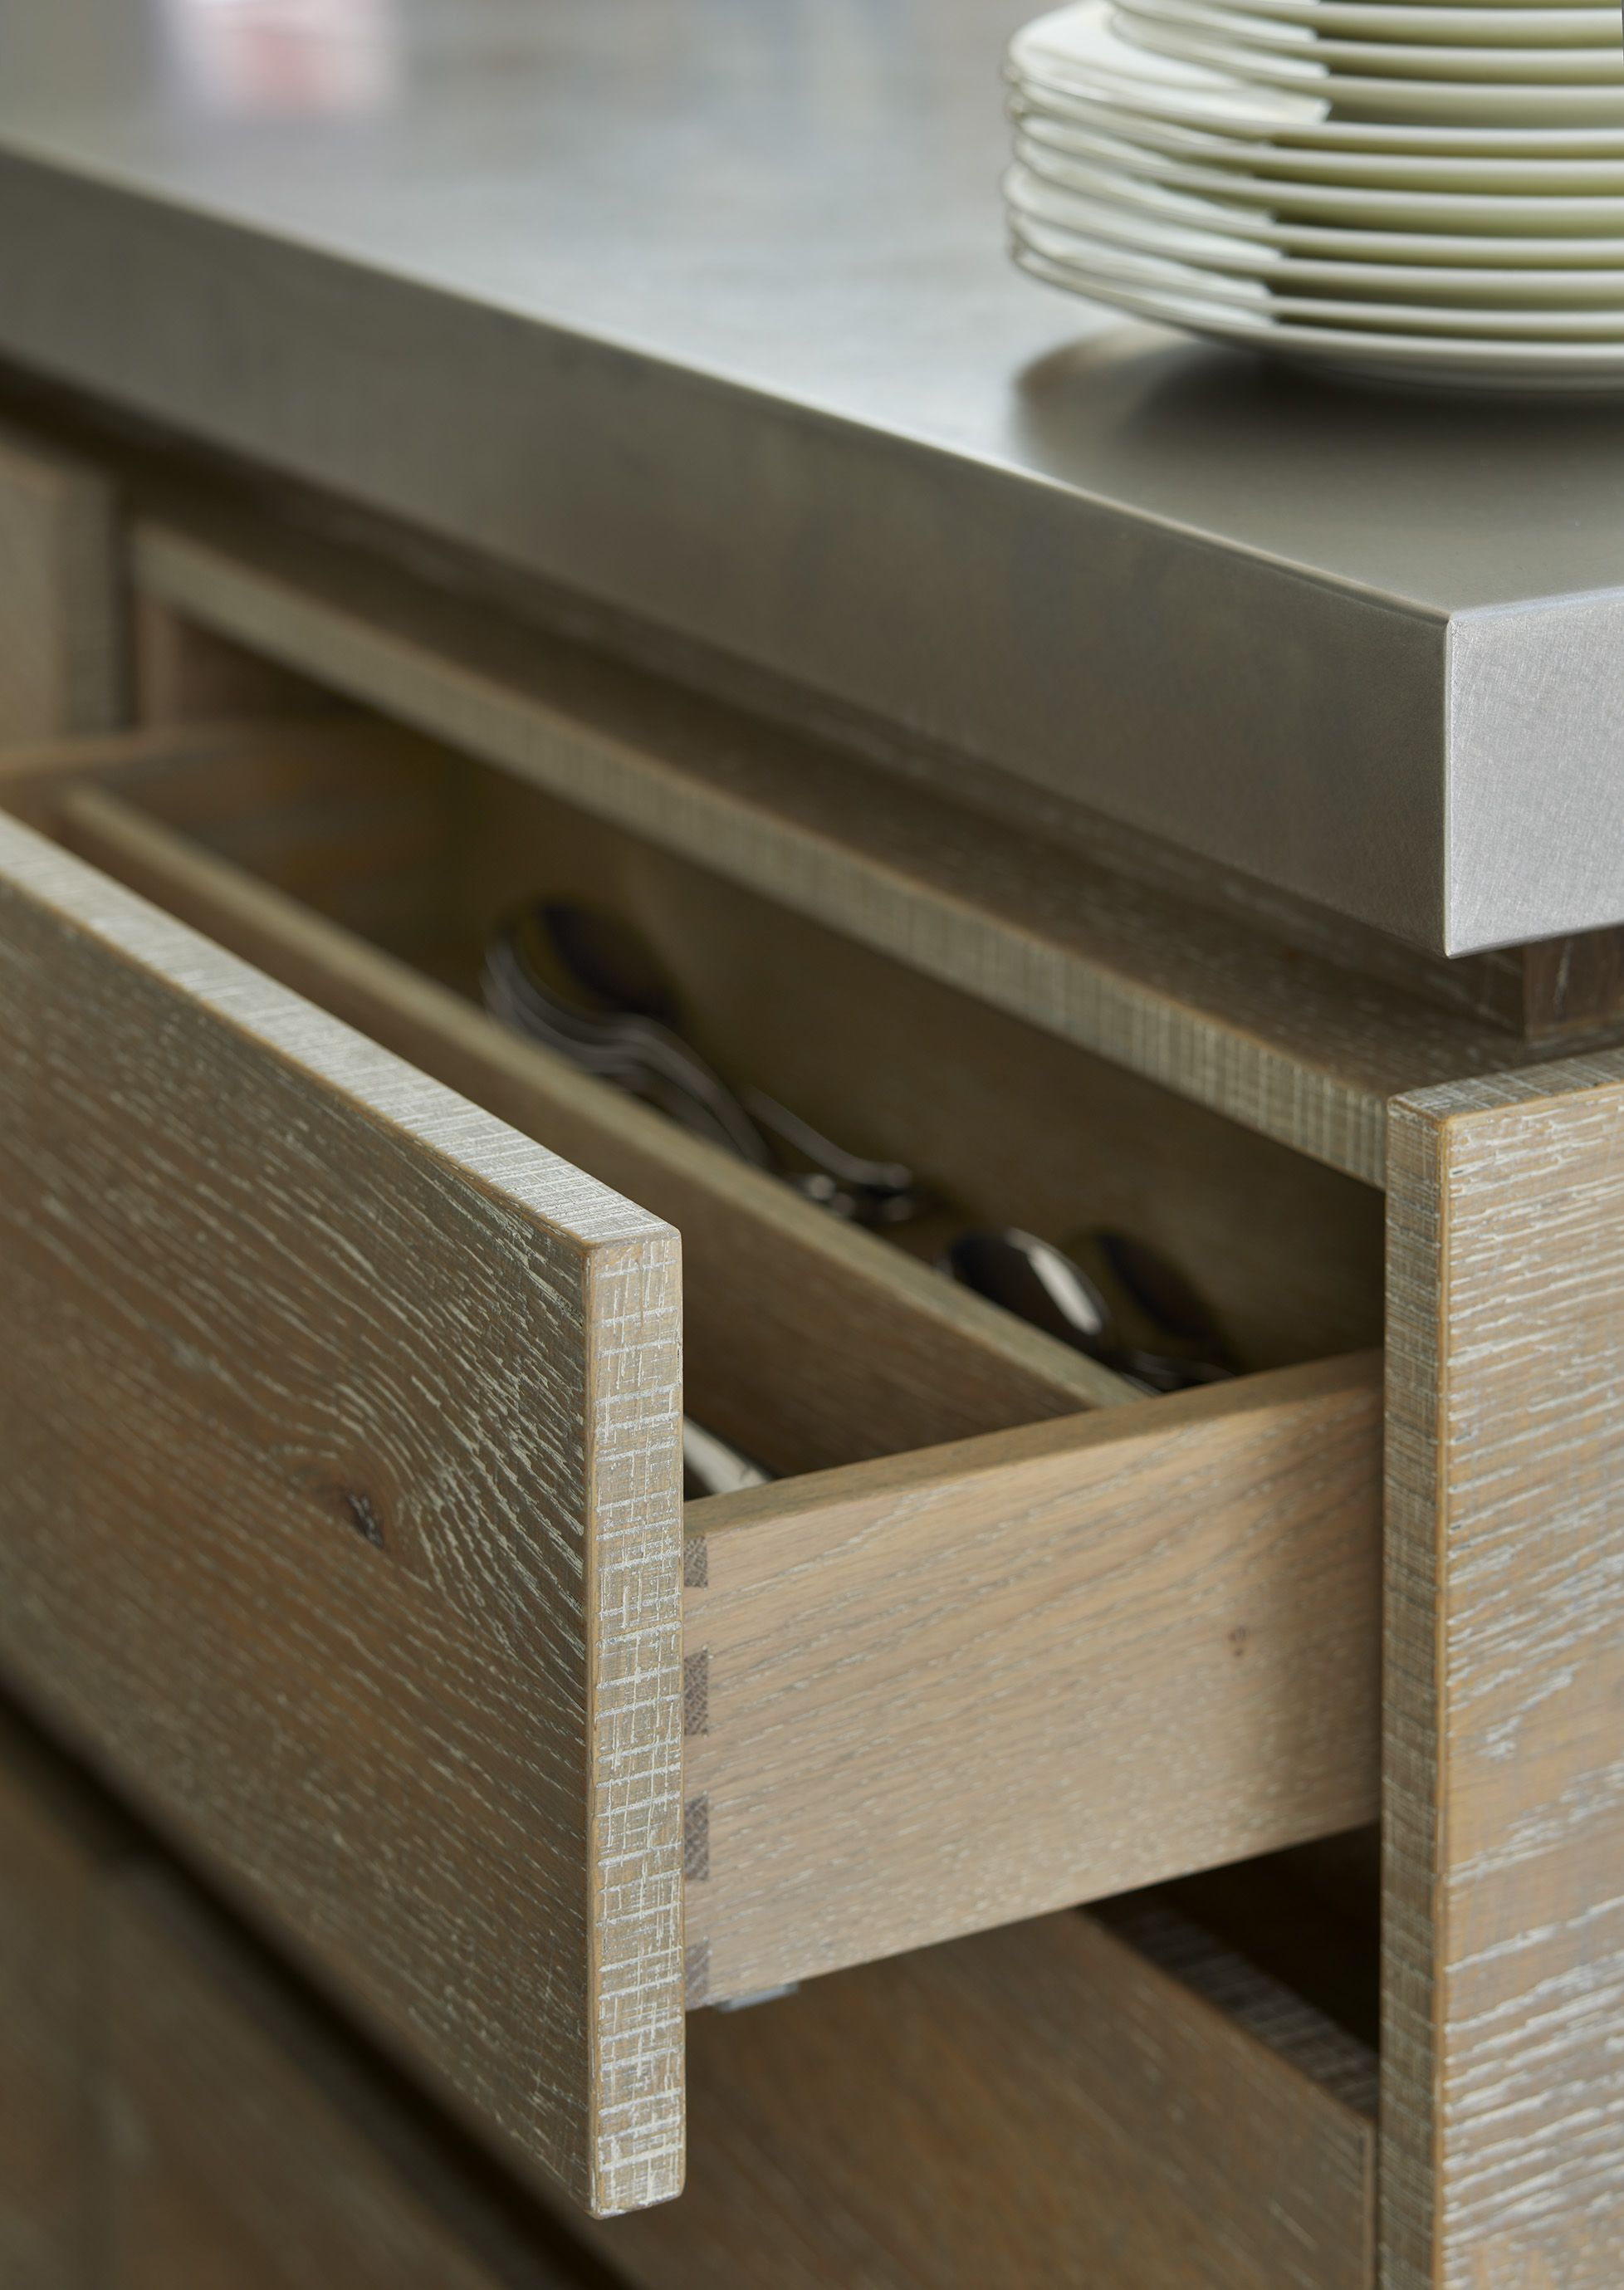 Custom Made Drawer Dividers By Roundhouse Design Helping To Keep Your Kitchenware Organised Round House Drawer Dividers Home Organization Hacks